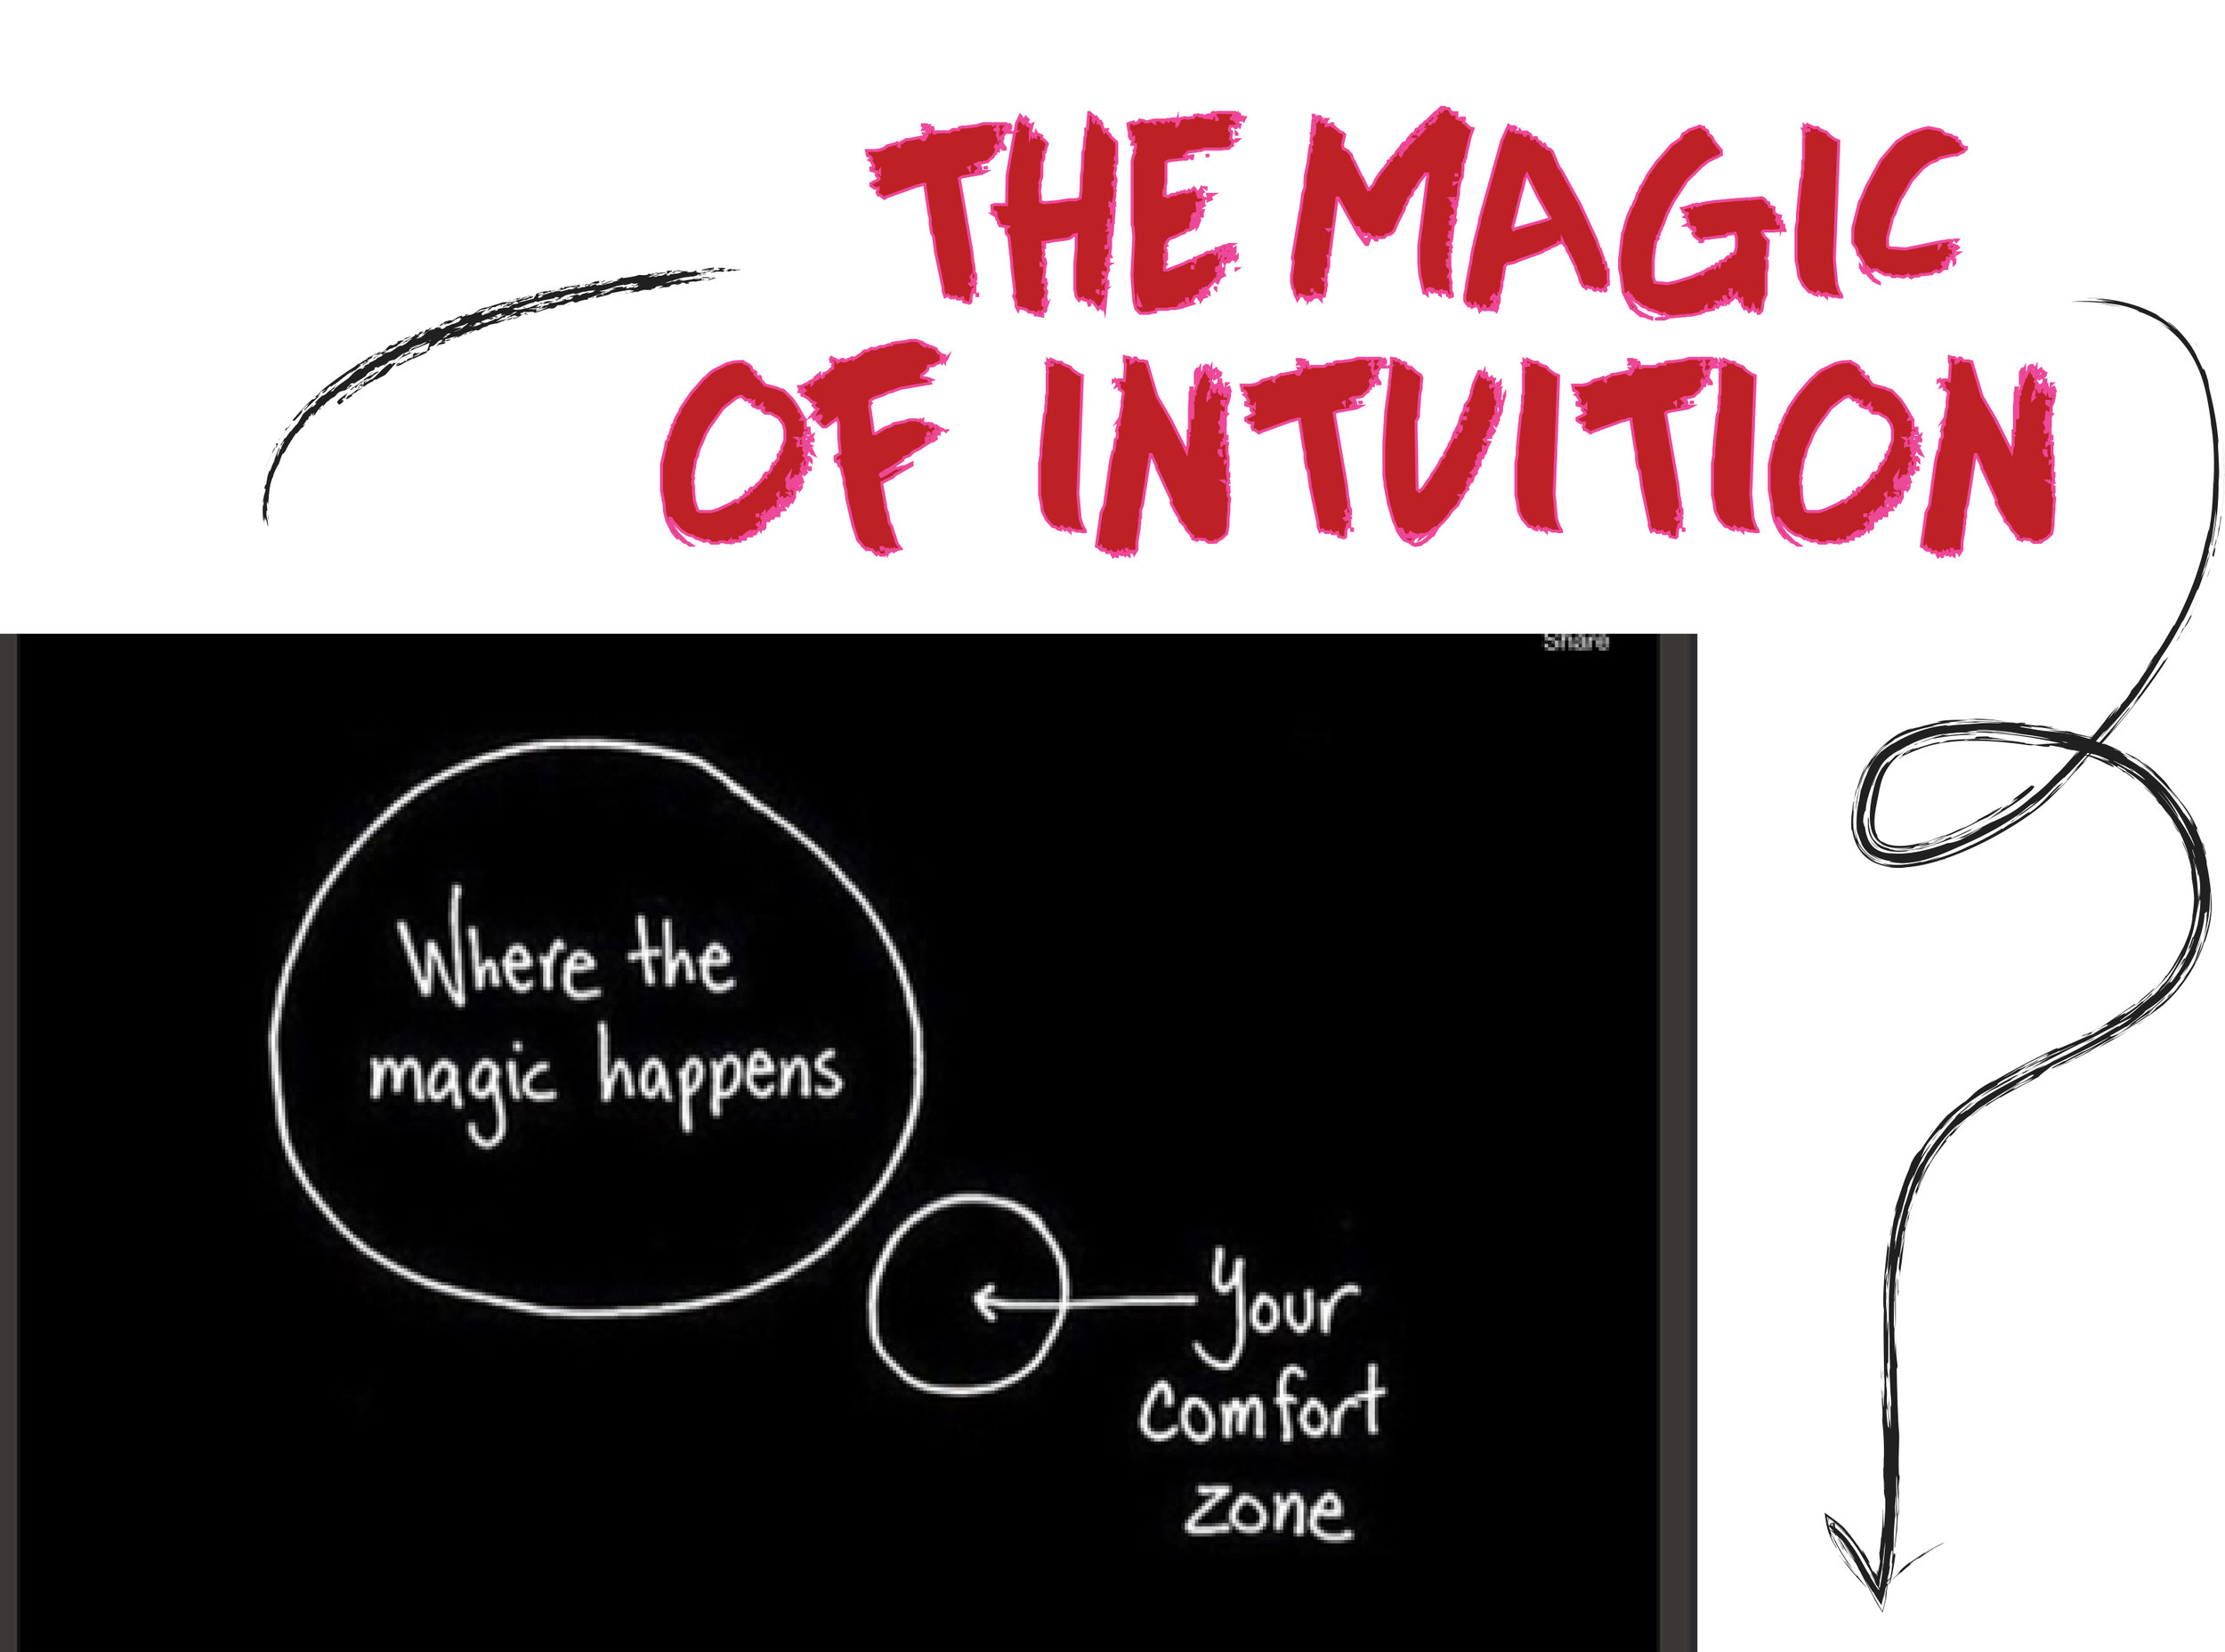 THE MAGIC OF INTUITION.jpg